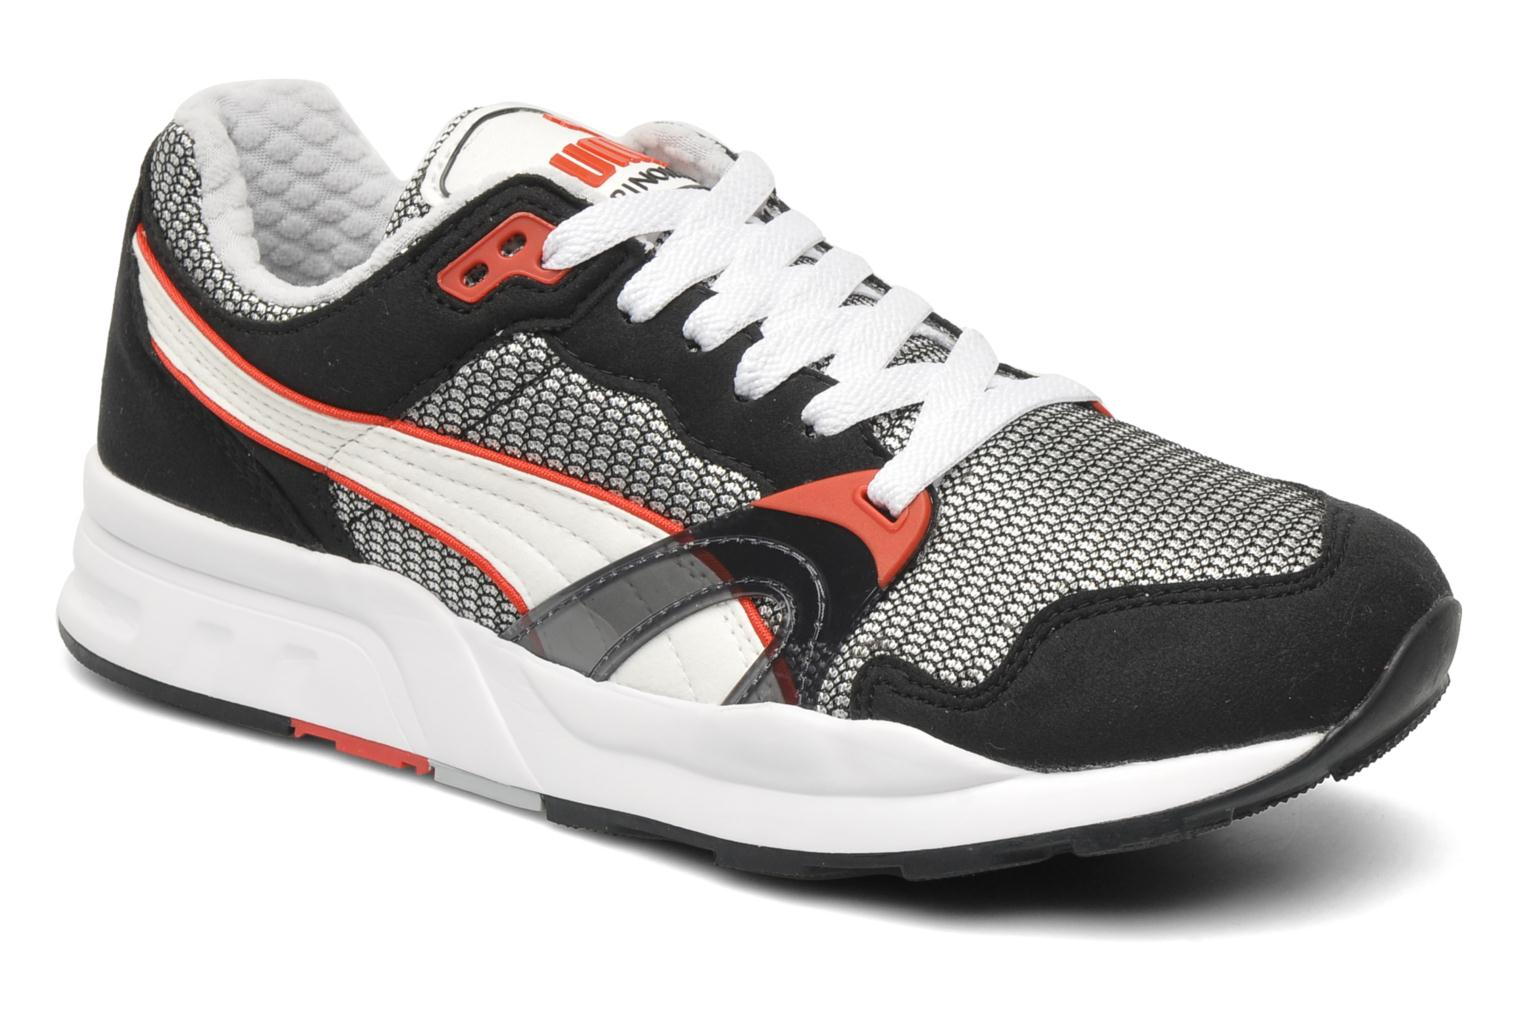 Puma Trinomic XT 1 PLUS Black-White